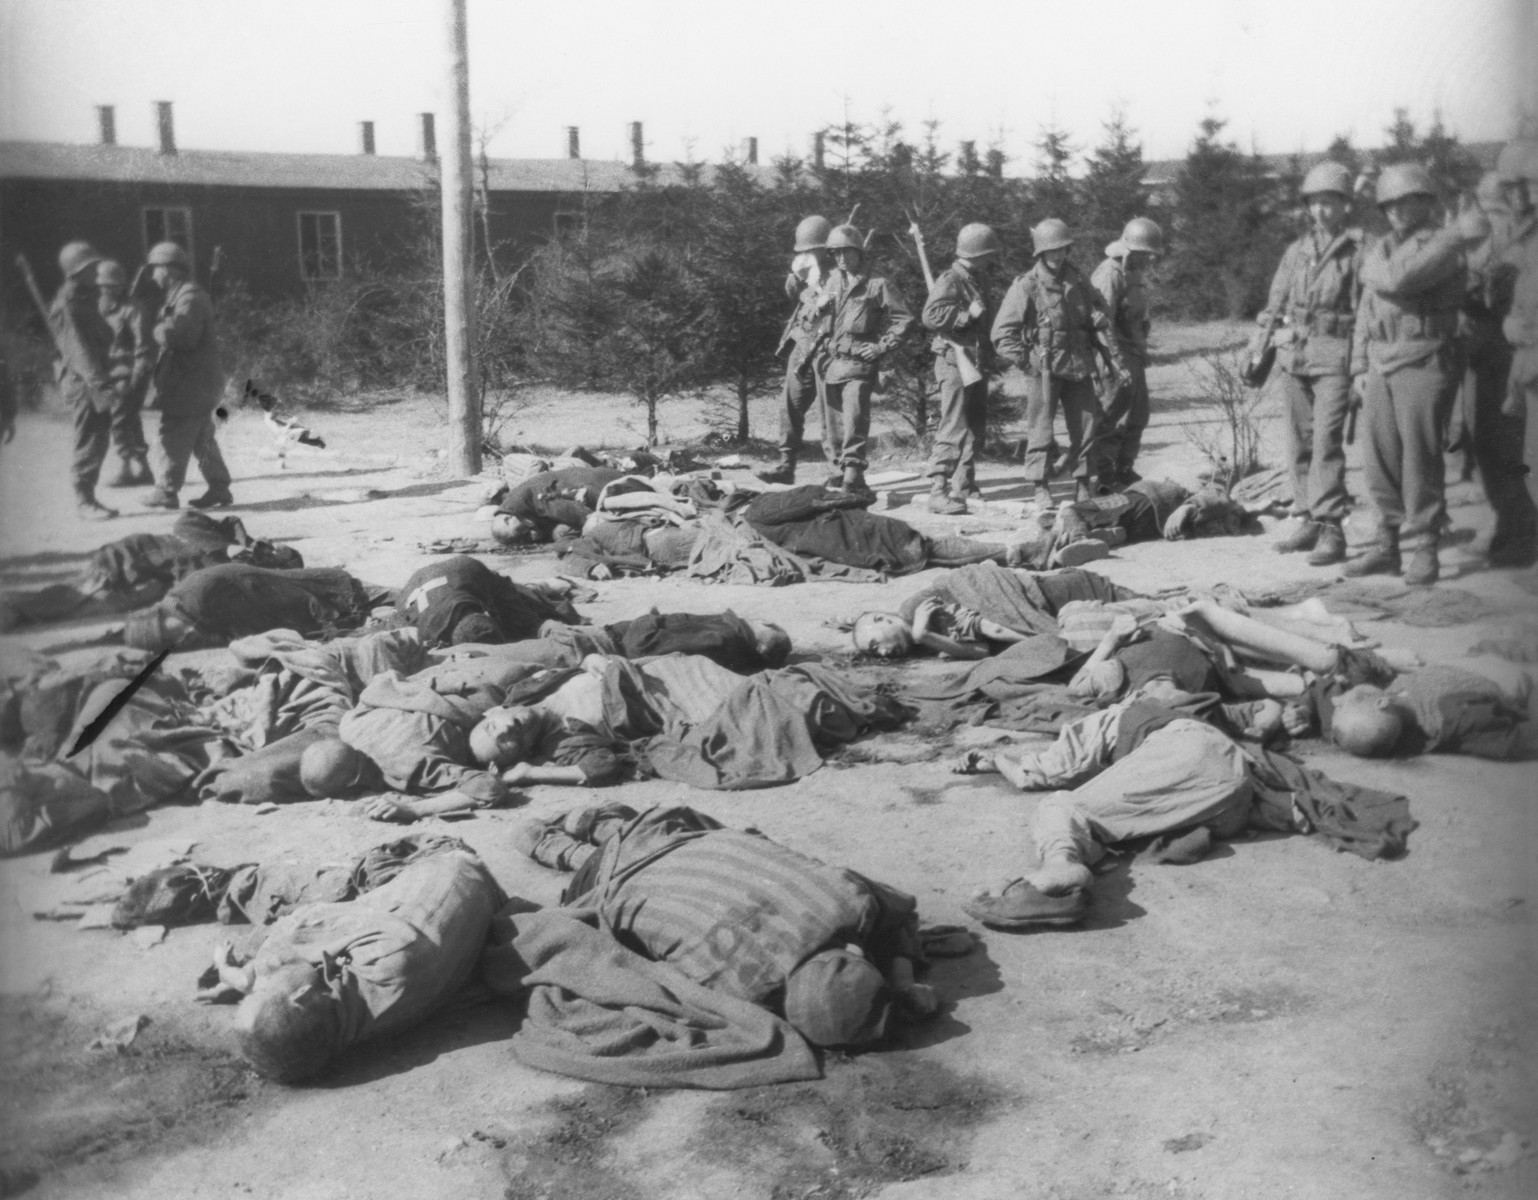 U.S. soldiers view the corpses of prisoners killed in Ohrdruf shortly before the camp's liberation.